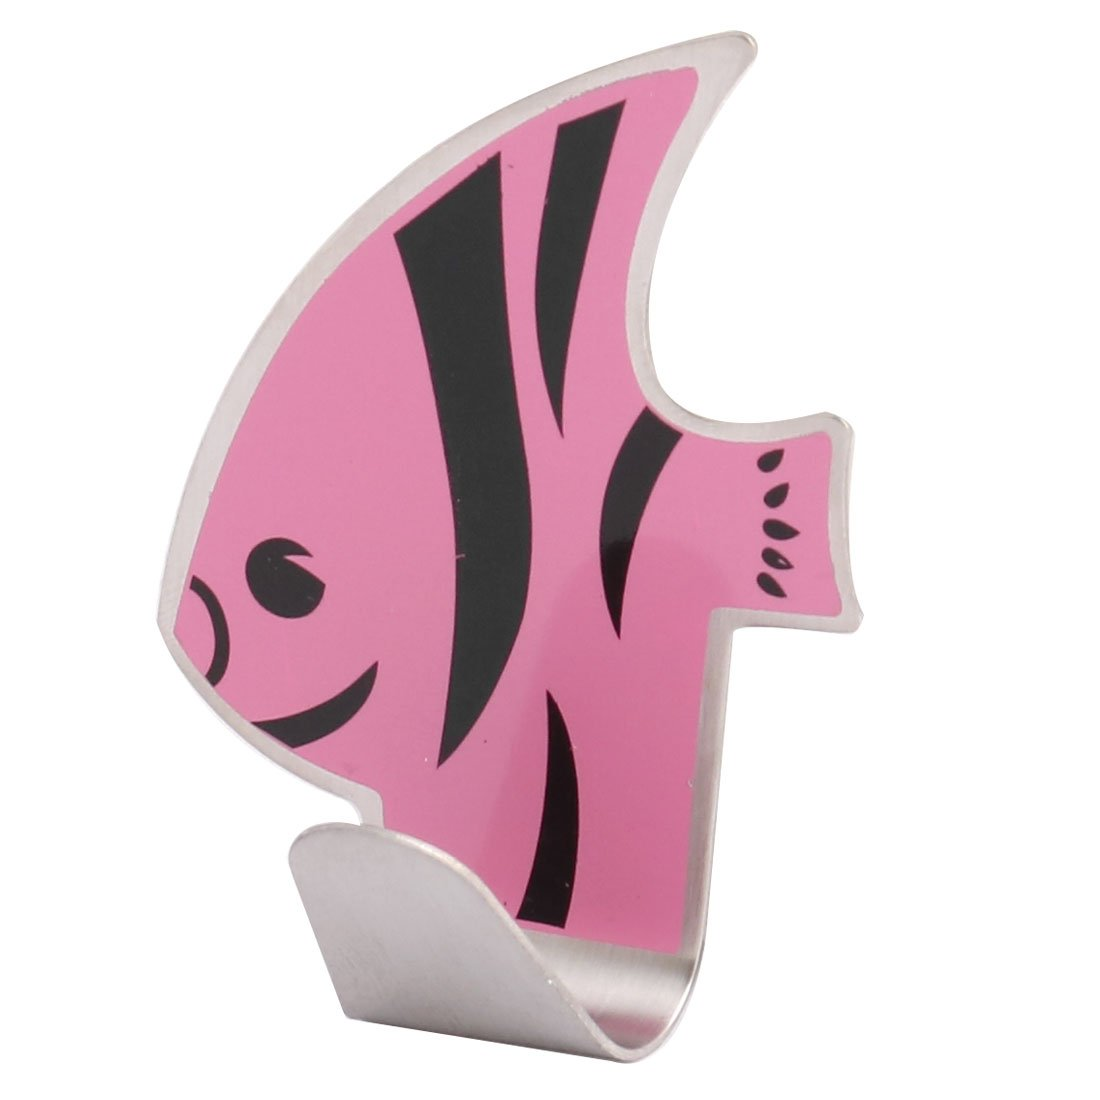 uxcell Stainless Steel Fish Shaped Household Bathroom Self Adhesive Wall Hanger Hook Tricolor good